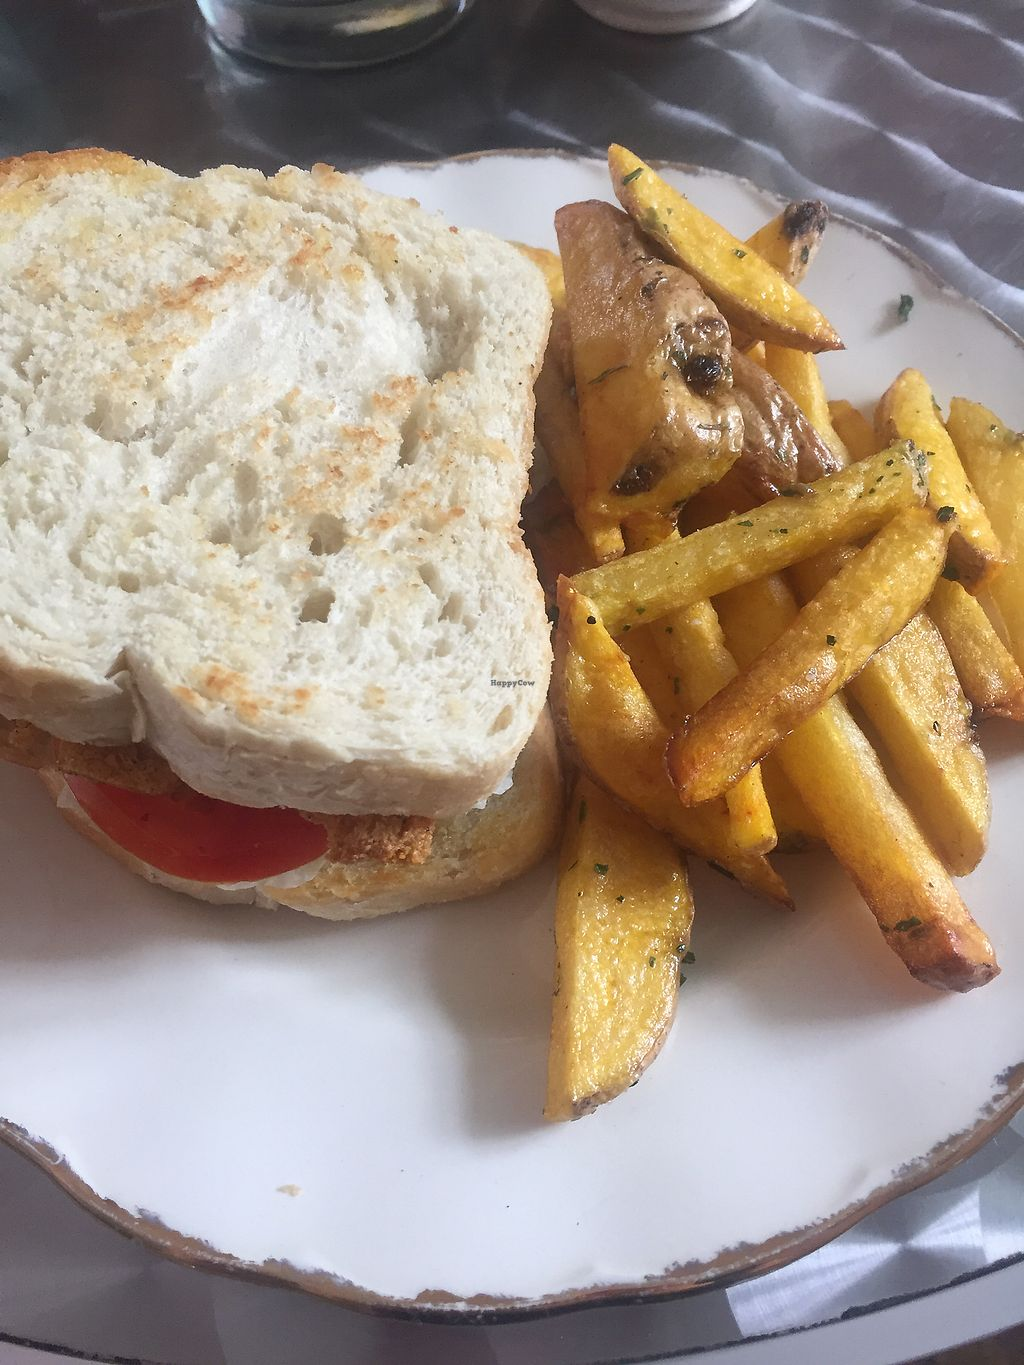 """Photo of The Churro Bar & Vegan Bakery  by <a href=""""/members/profile/amndaxxxx"""">amndaxxxx</a> <br/>Vegan BLT and fries <br/> January 14, 2018  - <a href='/contact/abuse/image/86714/346597'>Report</a>"""